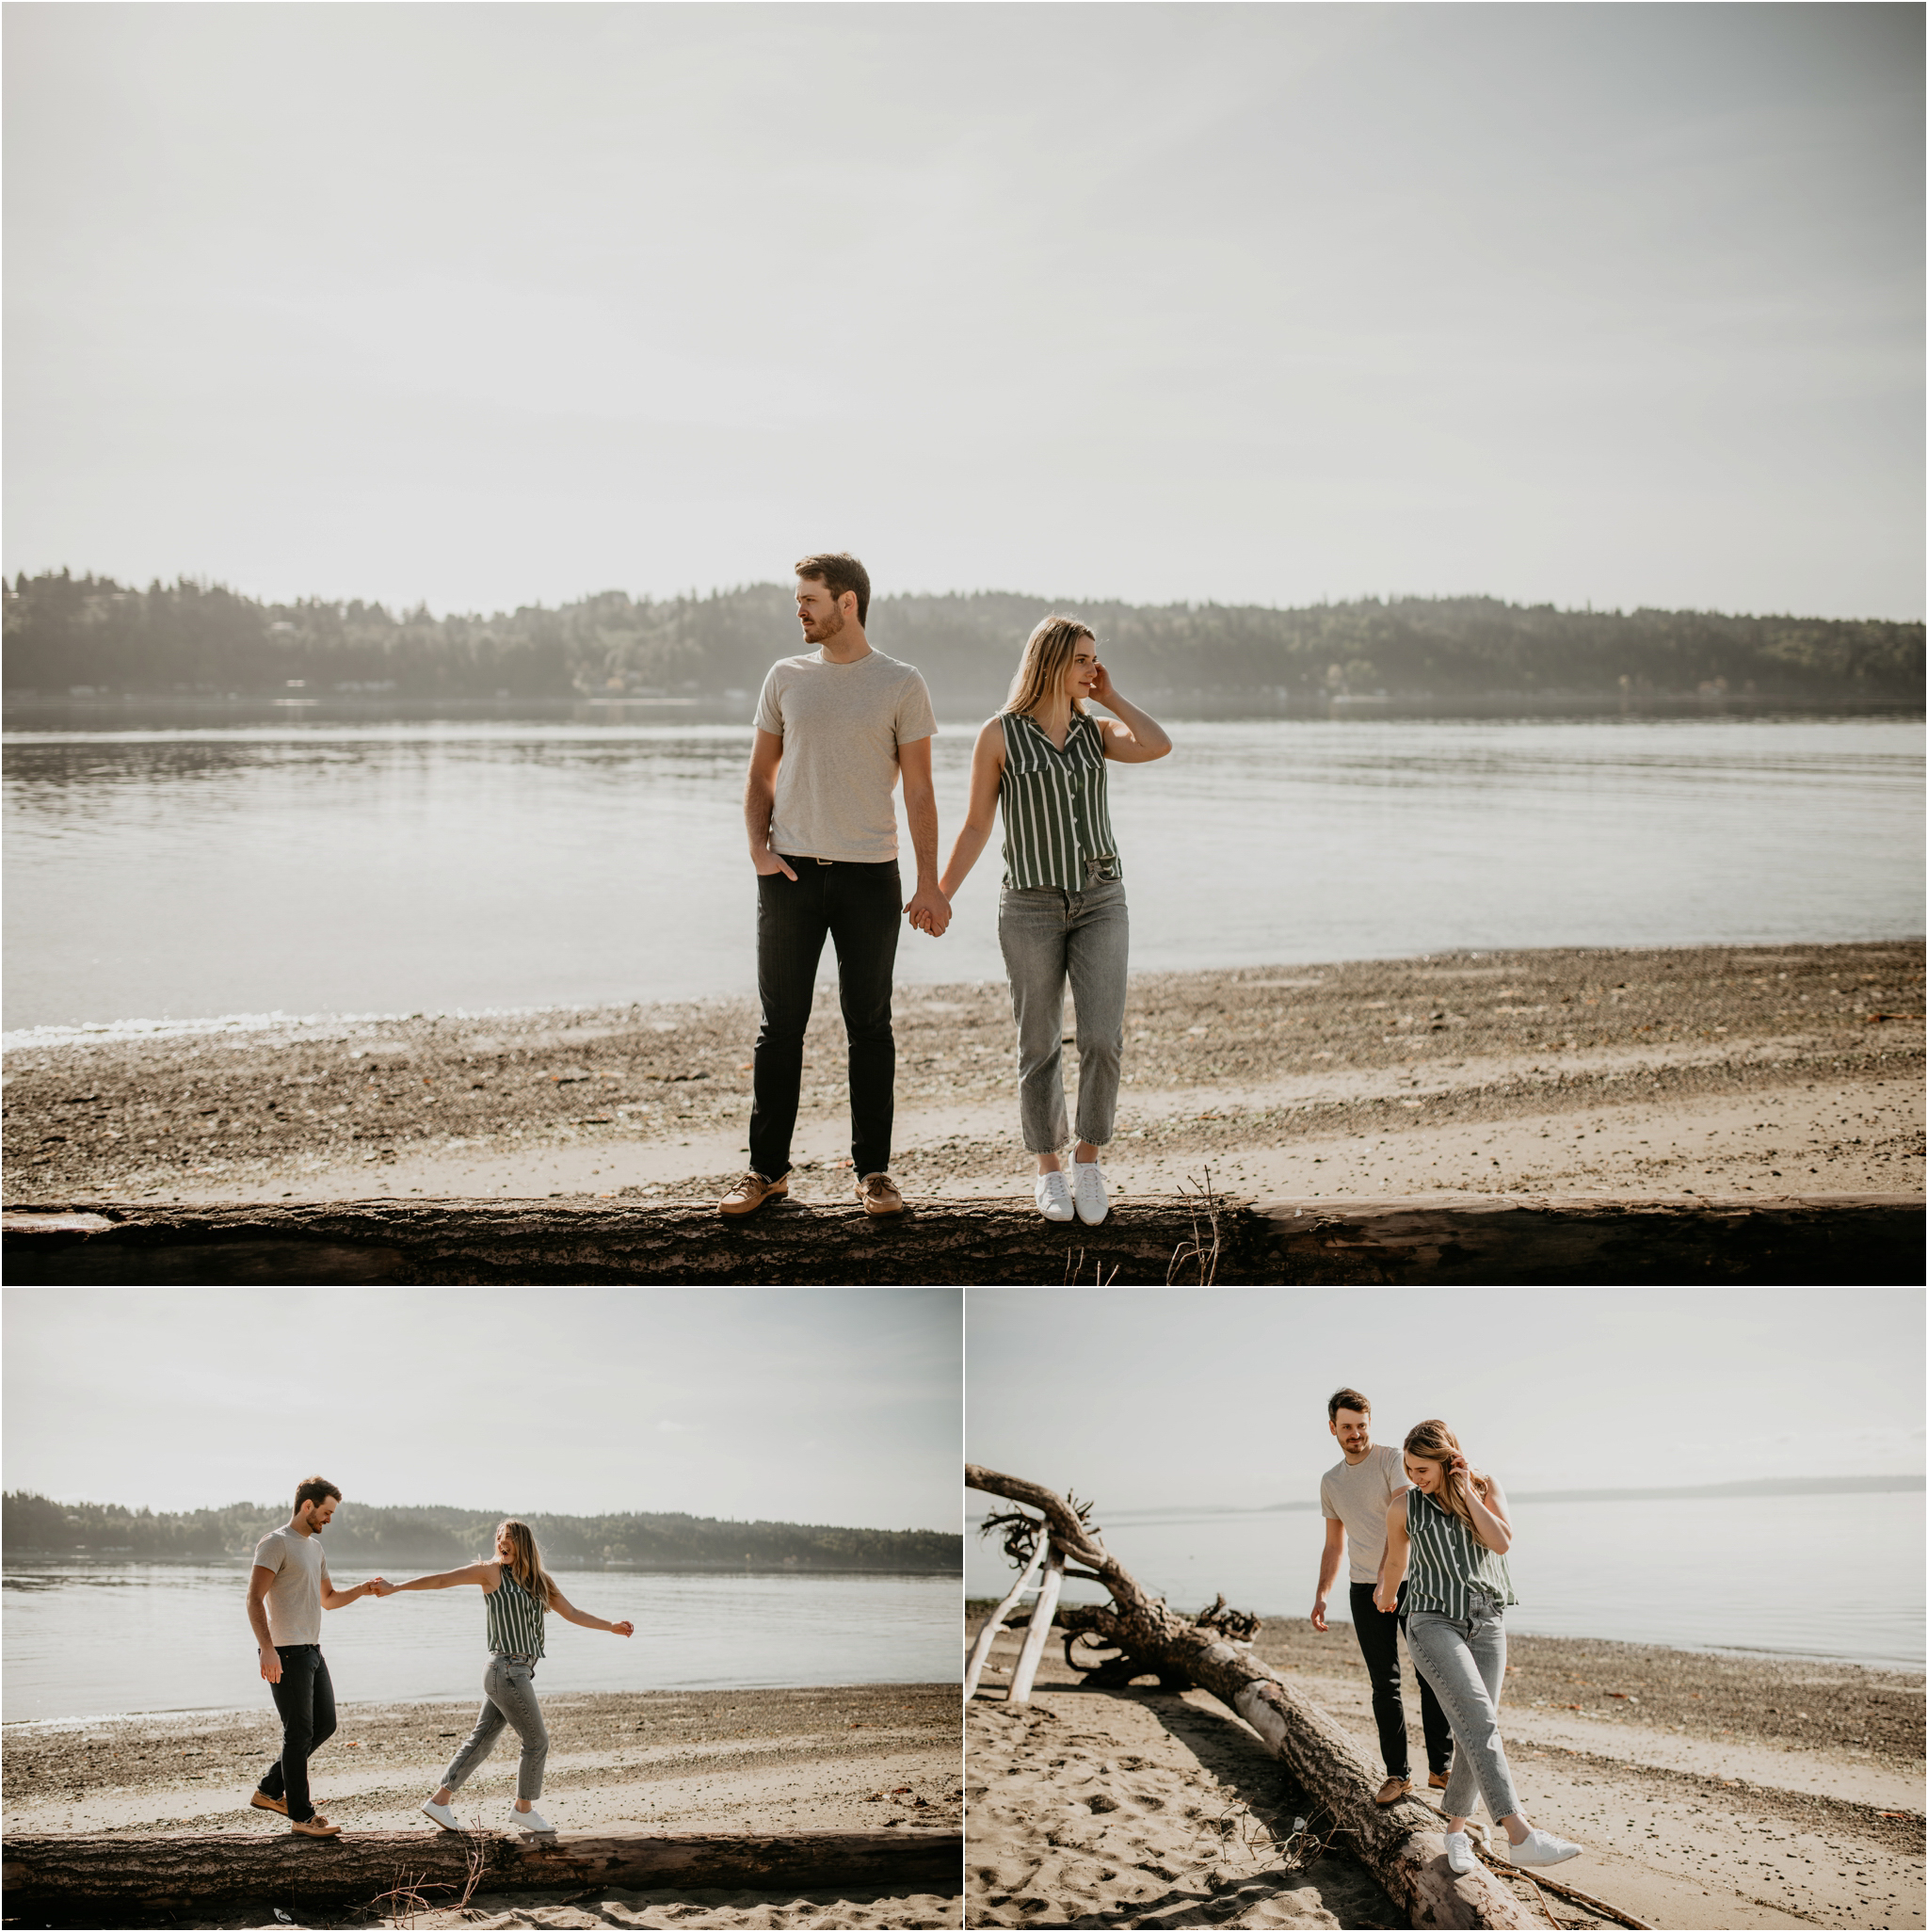 rile-and-ryan-fauntleroy-ferry-vashon-island-seattle-engagement-session-023.jpg